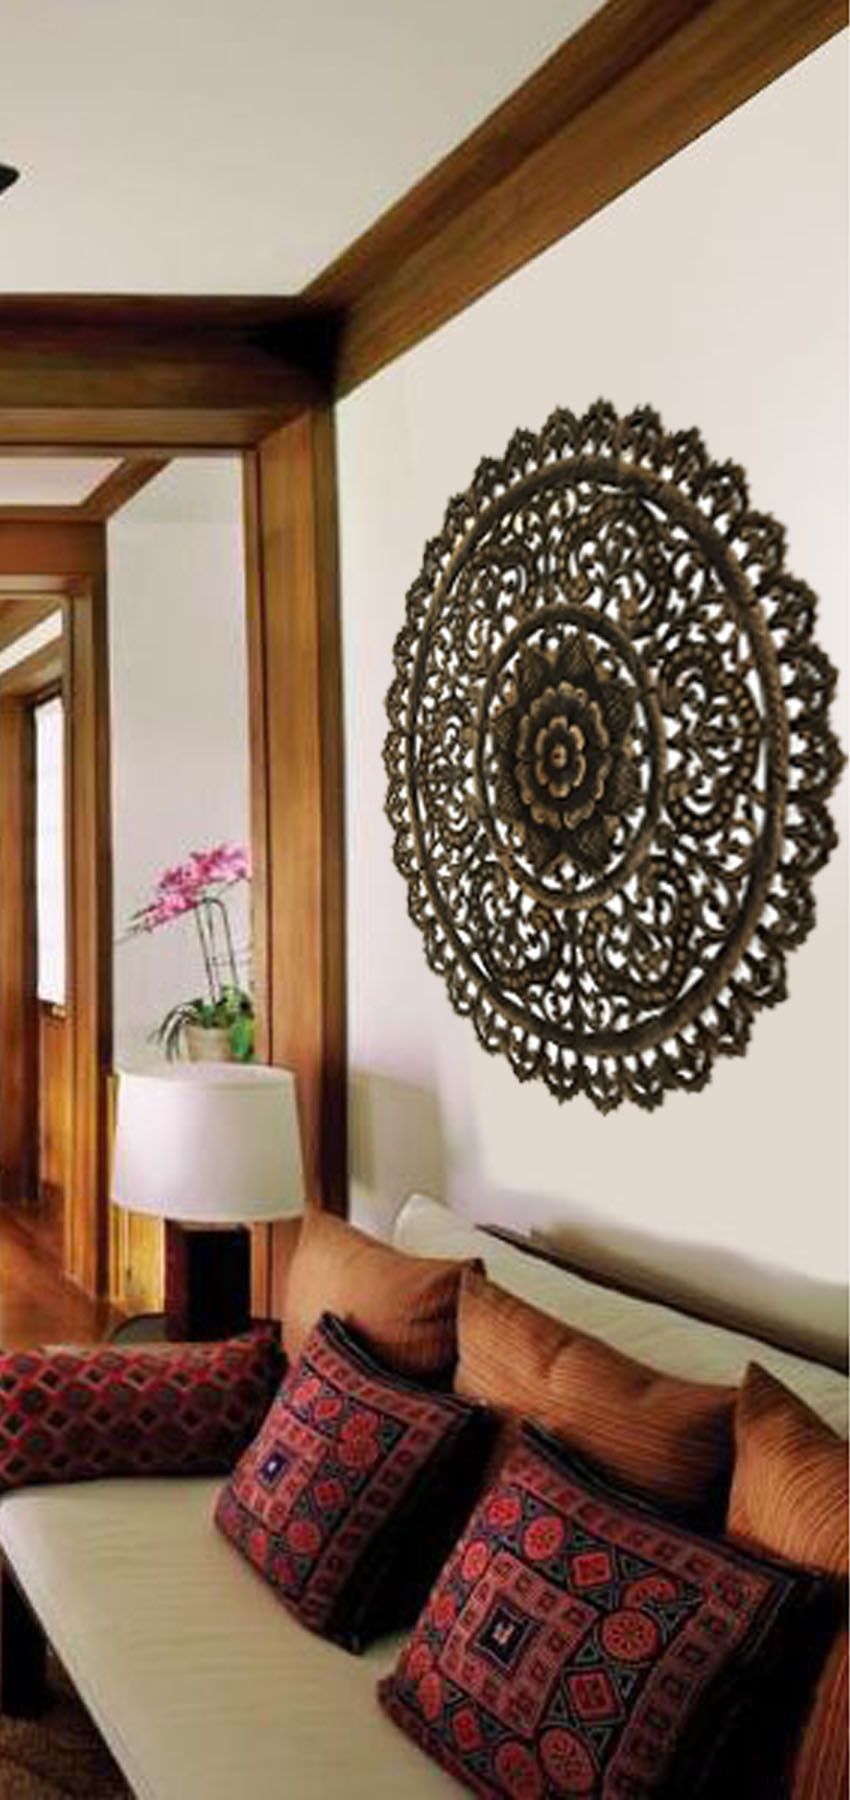 Elegant medallion wood carved wall plaque large round carving sacred fig leaf decor also floral art asian rh pinterest